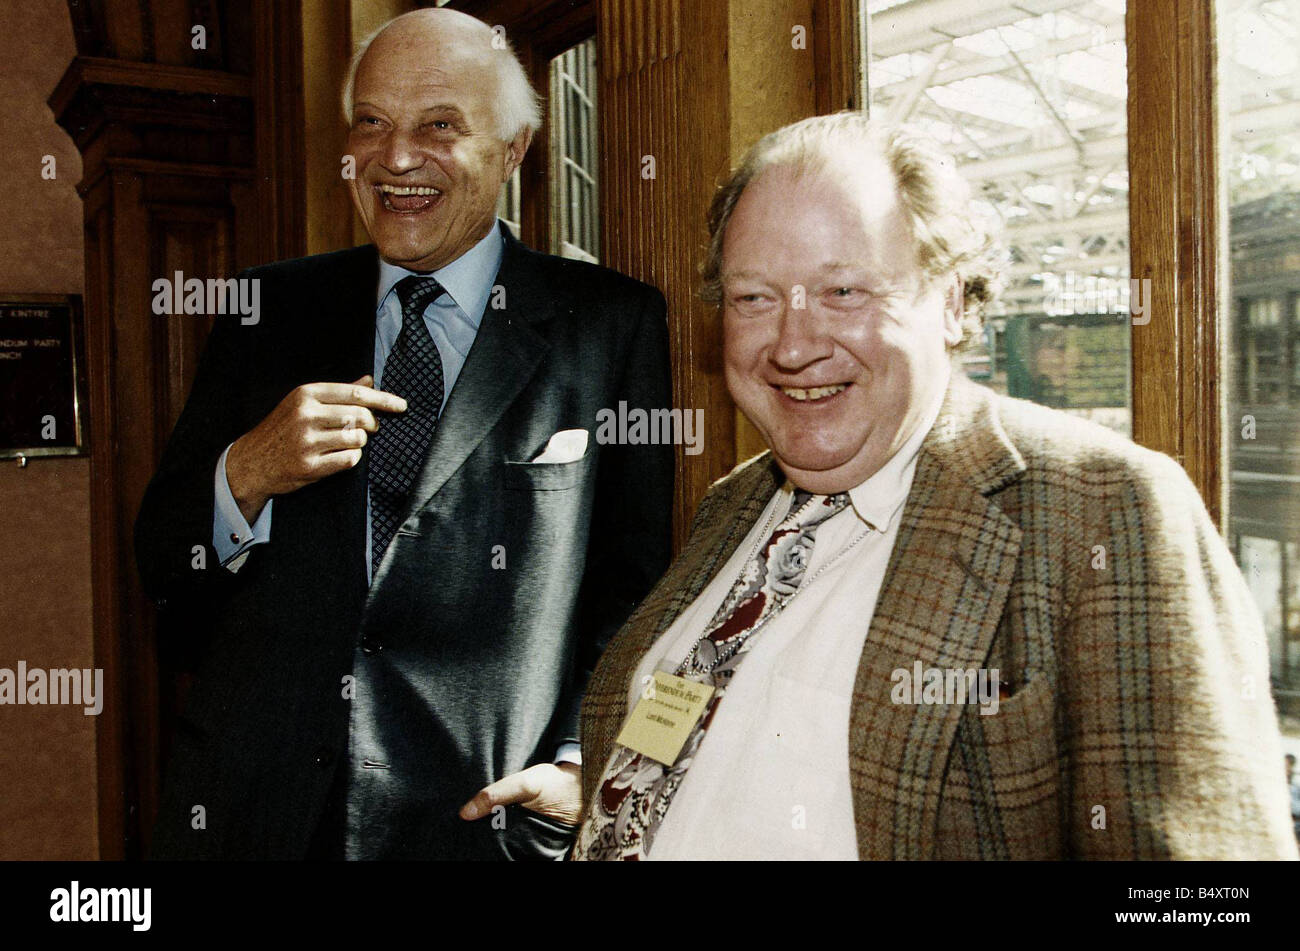 Sir James Goldsmith and Lord McAlpine at The Central Hotel Glasgow Stock Photo